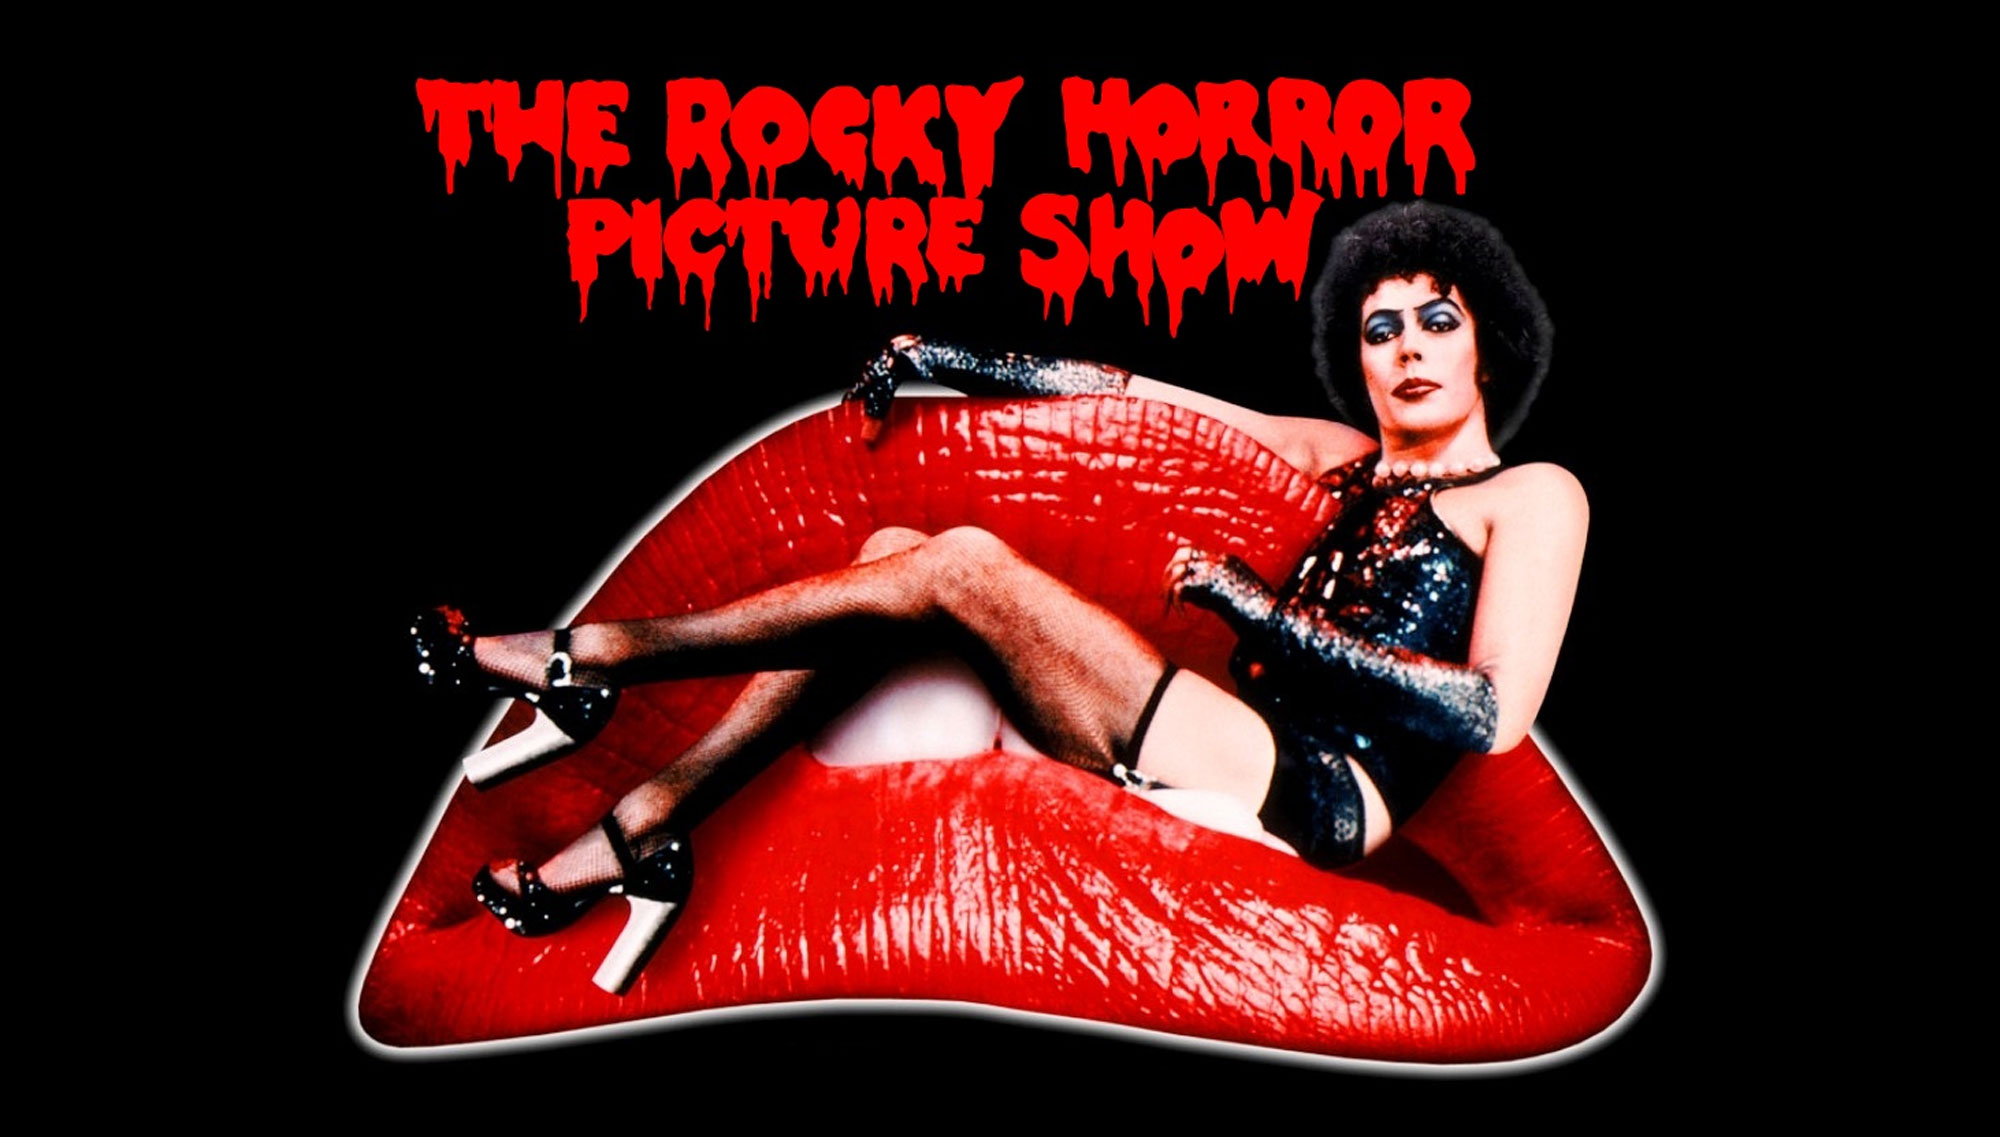 RKO ARMY PRESENTS THE ROCKY HORROR PICTURE SHOW   <H6>With Michael Jackson's Thriller!  </H6><H5>October 20  </h5>